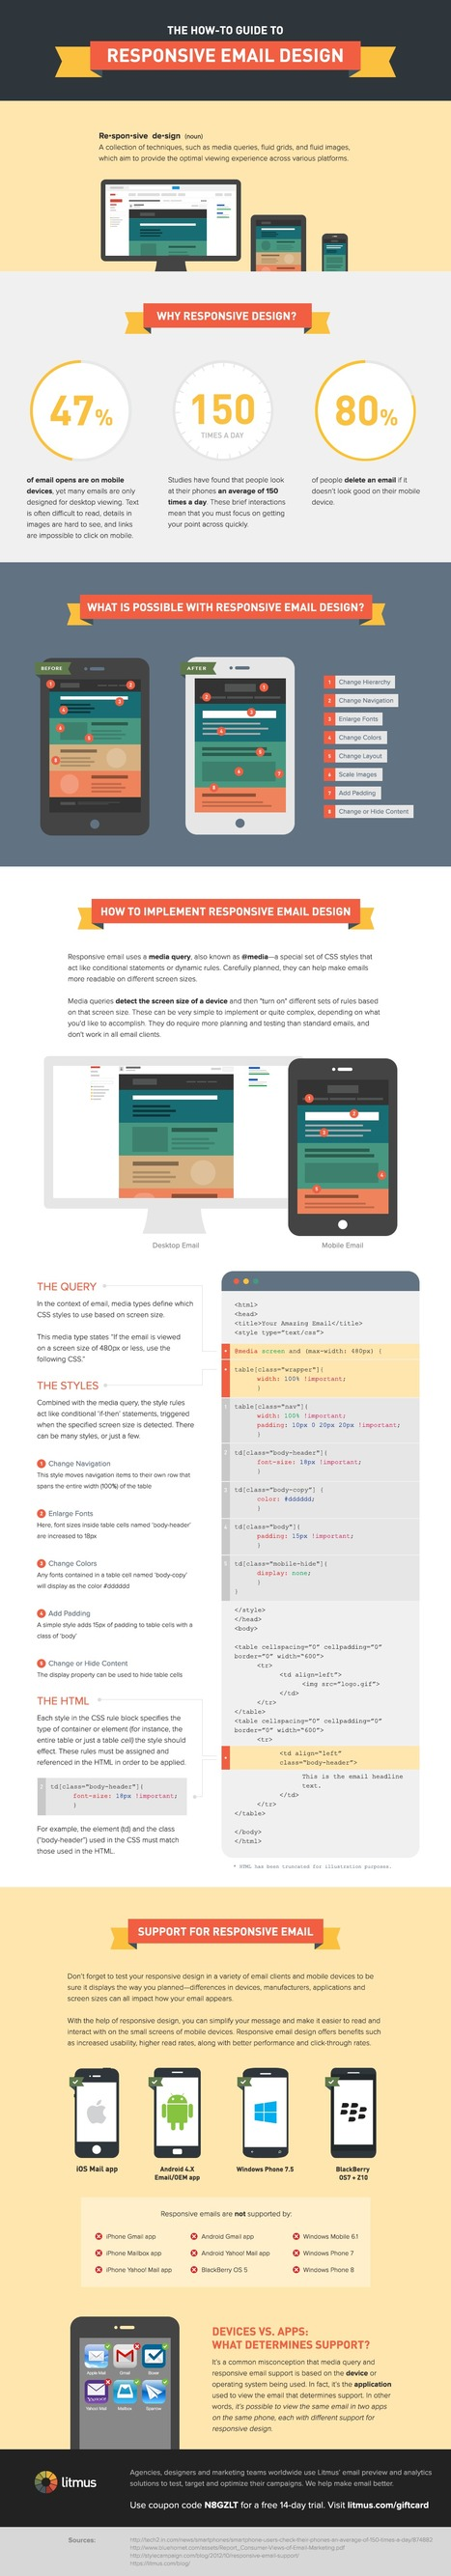 The How-To Guide to Responsive Email Design [Infographic] | GoGo Social - Grab Bag | Scoop.it